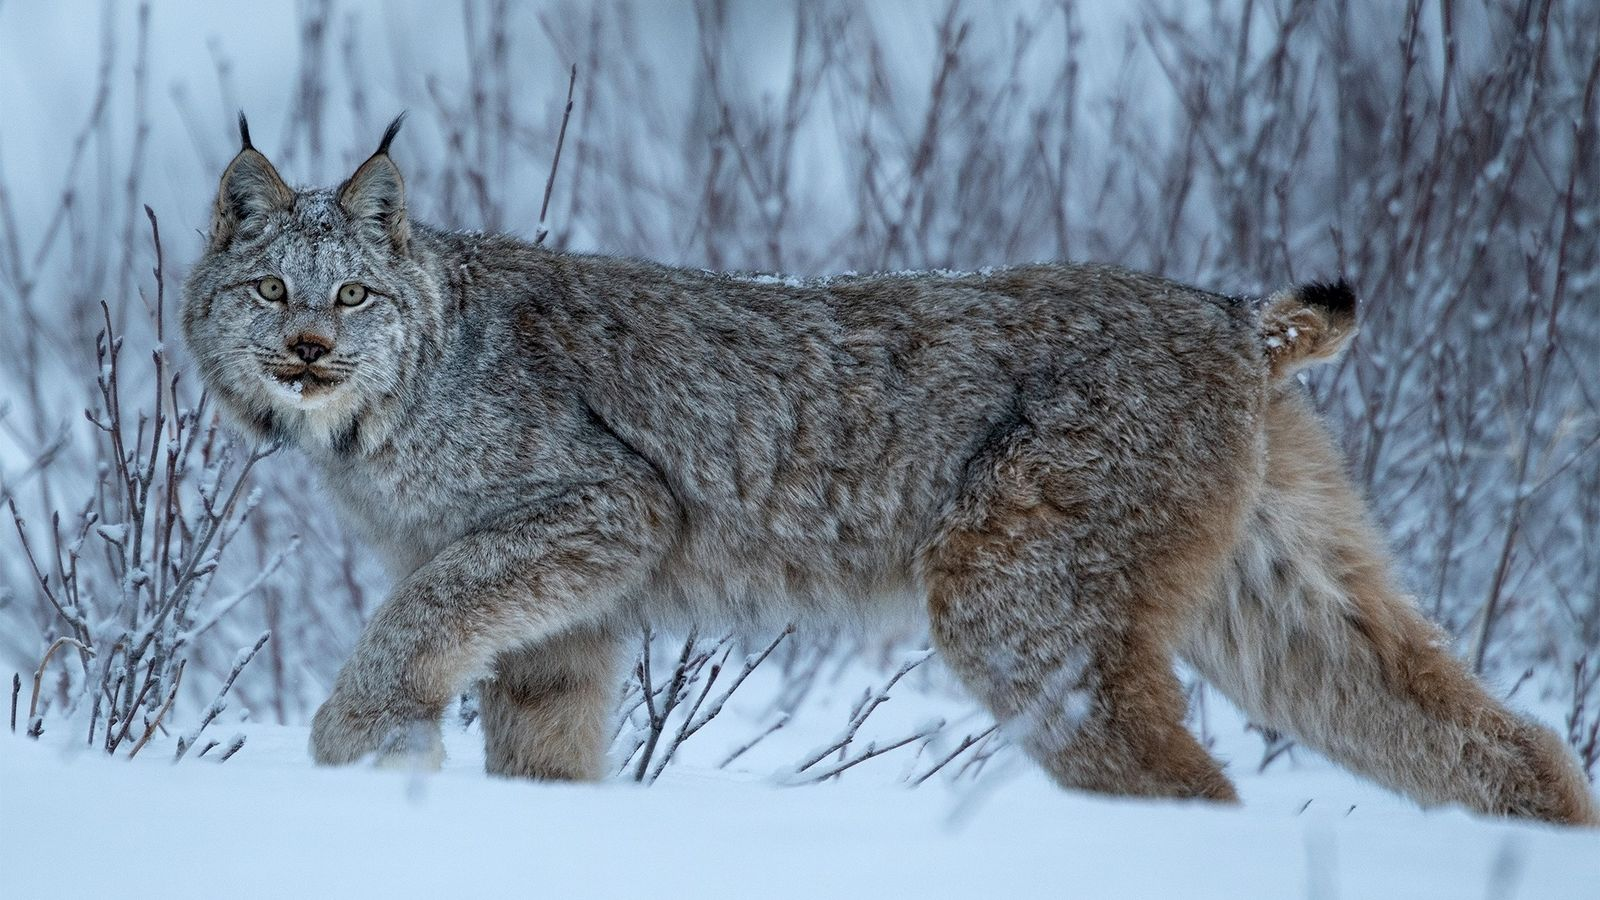 A Canada lynx blends into snow-covered willows in southern Yukon Territory, Canada.